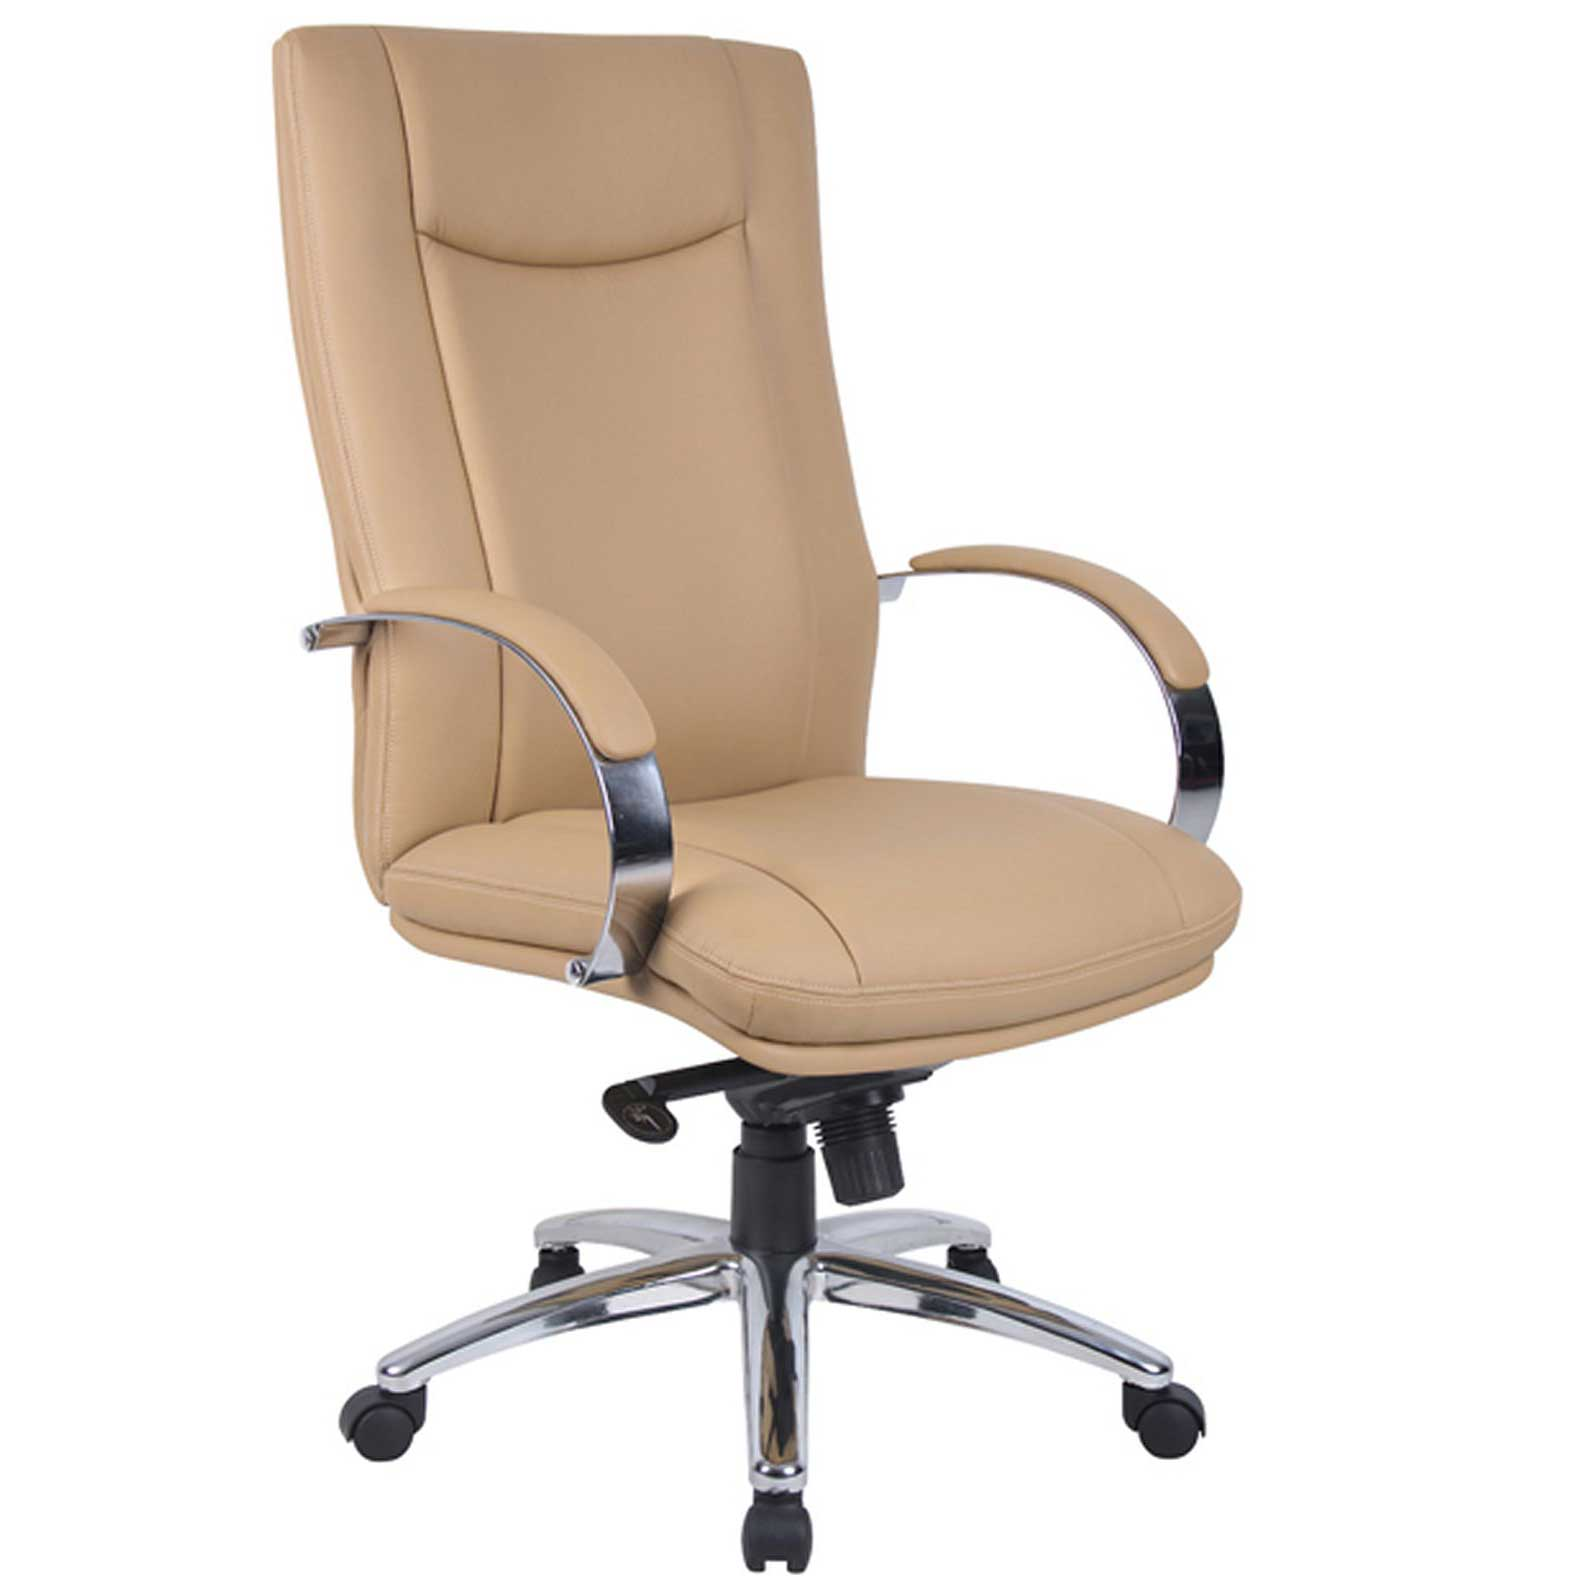 Executive Leather Chair Advantages